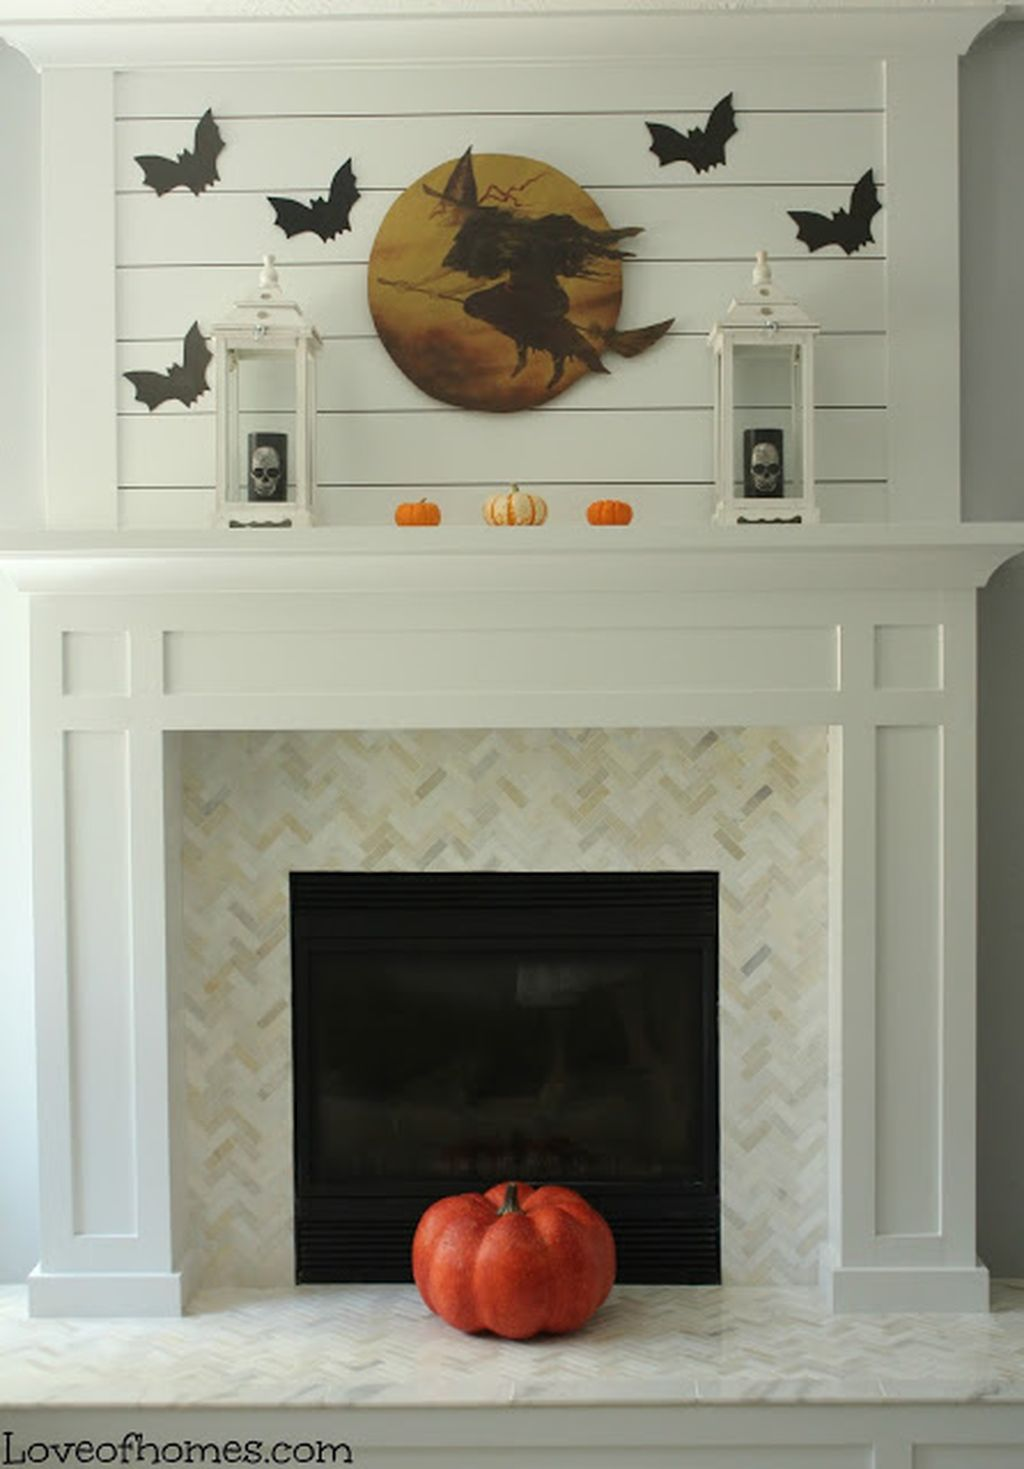 Scary But Classy Halloween Fireplace Decoration Ideas 20